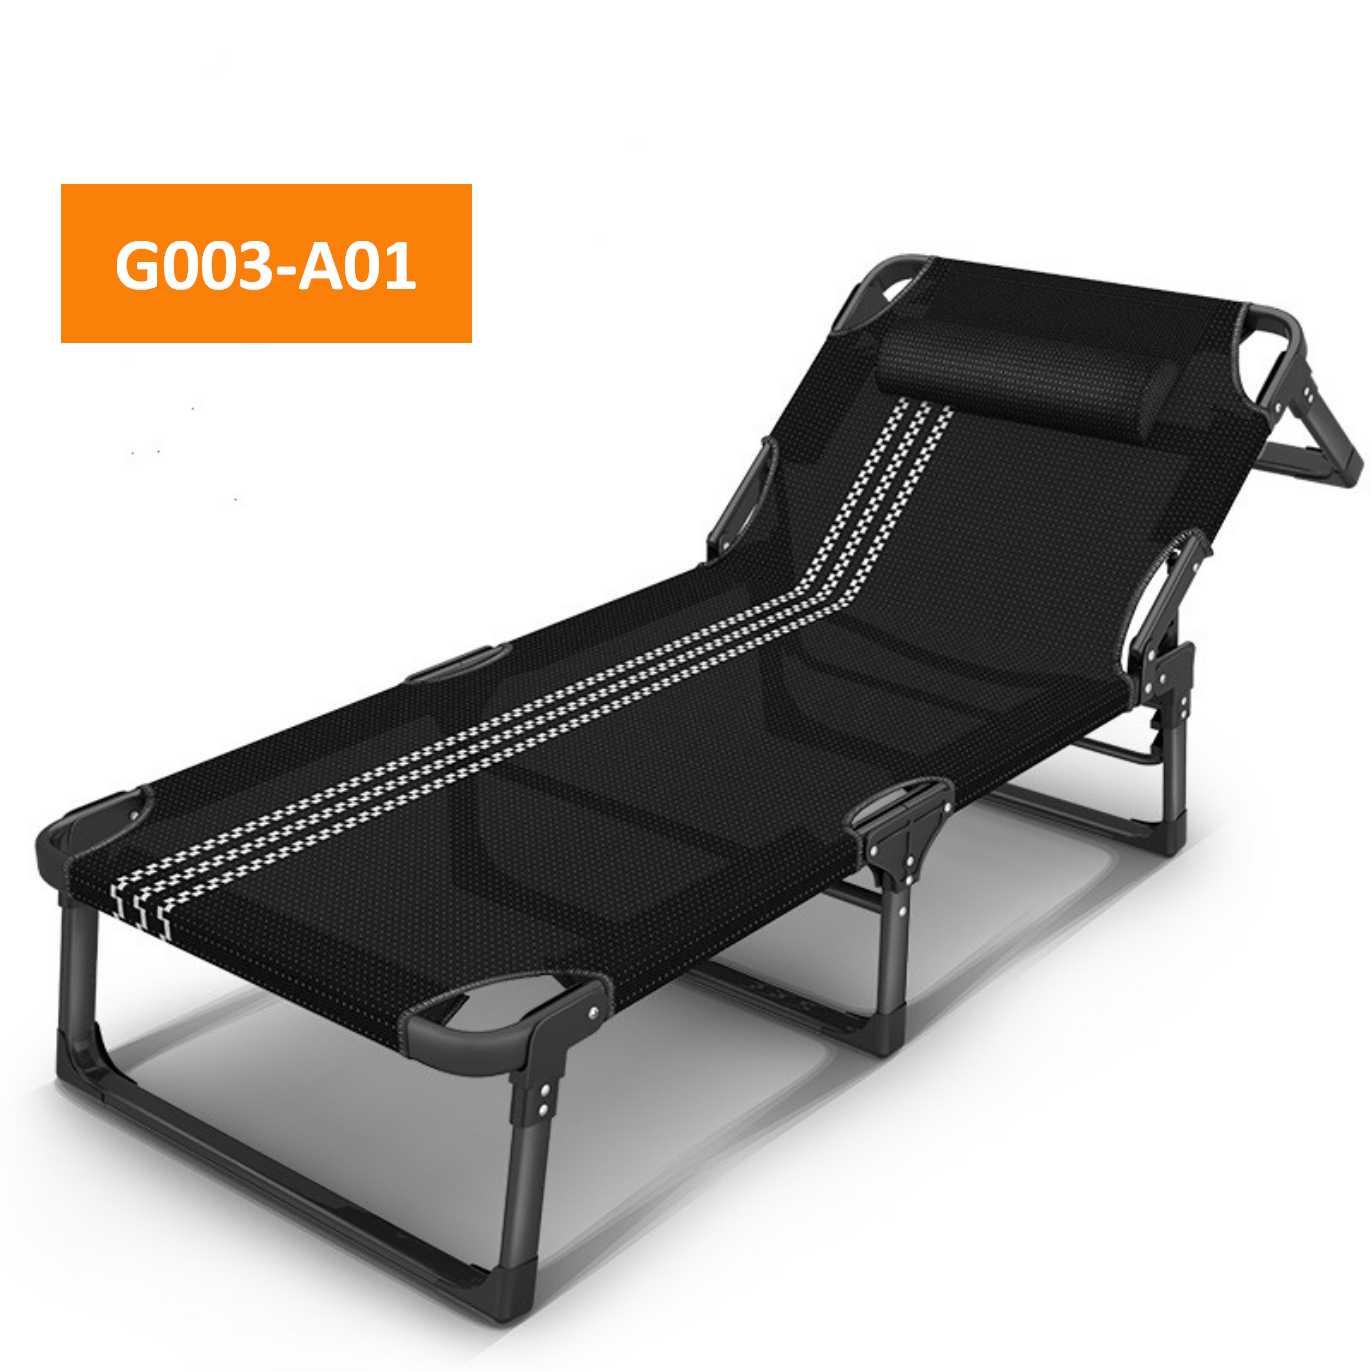 AIDEAL.sg 189cm Foldable Chair Portable Lying Bed (black)Foldable bed/Camping Bed/Deck chair/Office bed/single bed